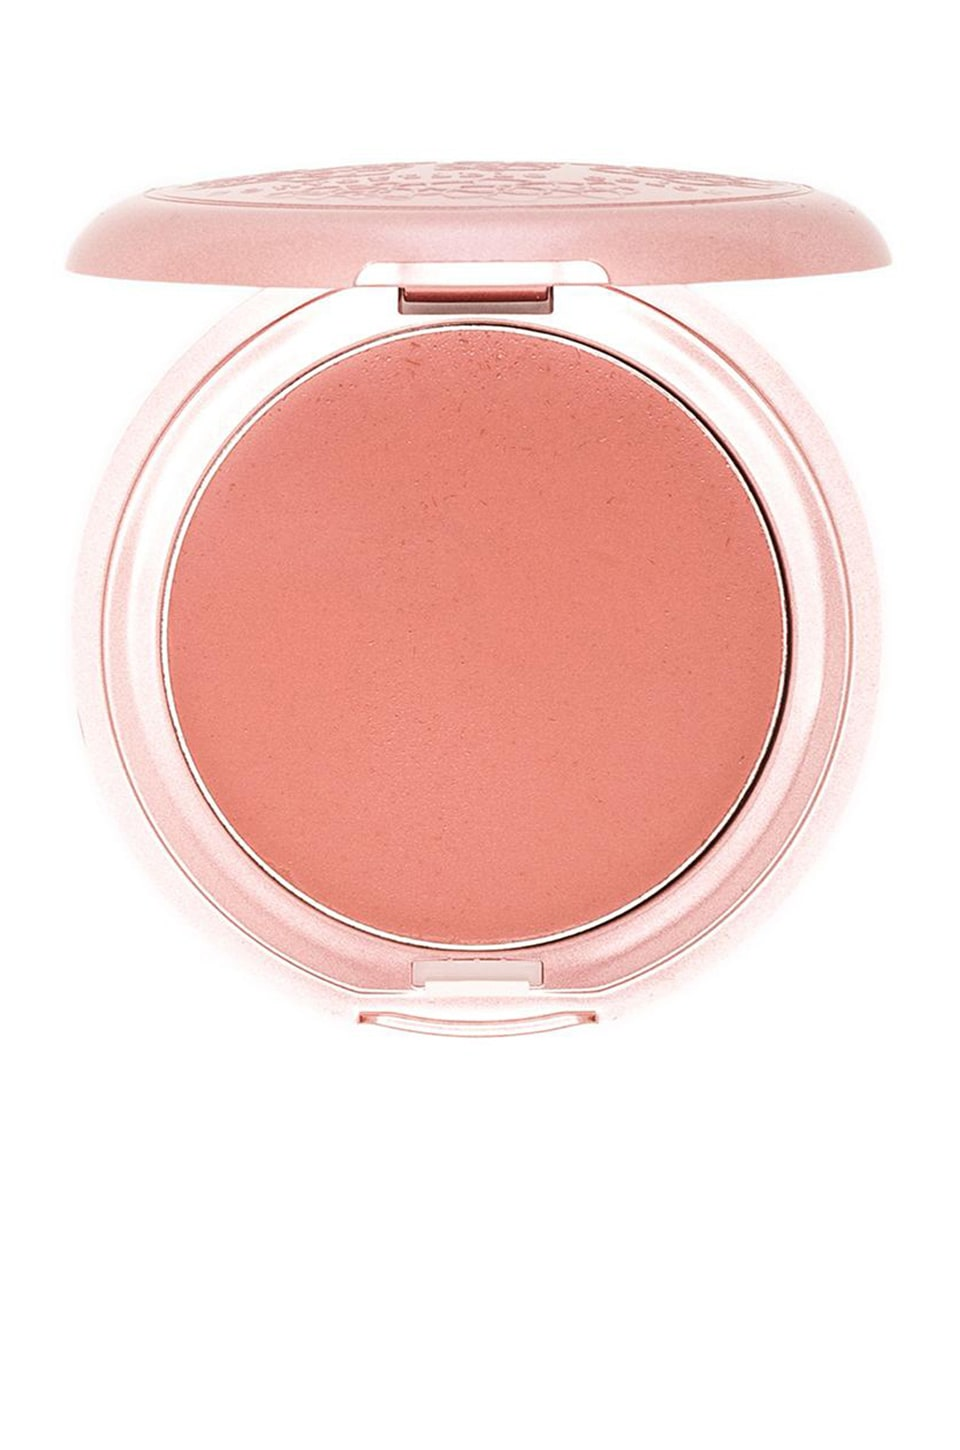 Stila Cheek and Lip Convertible Color in Peony